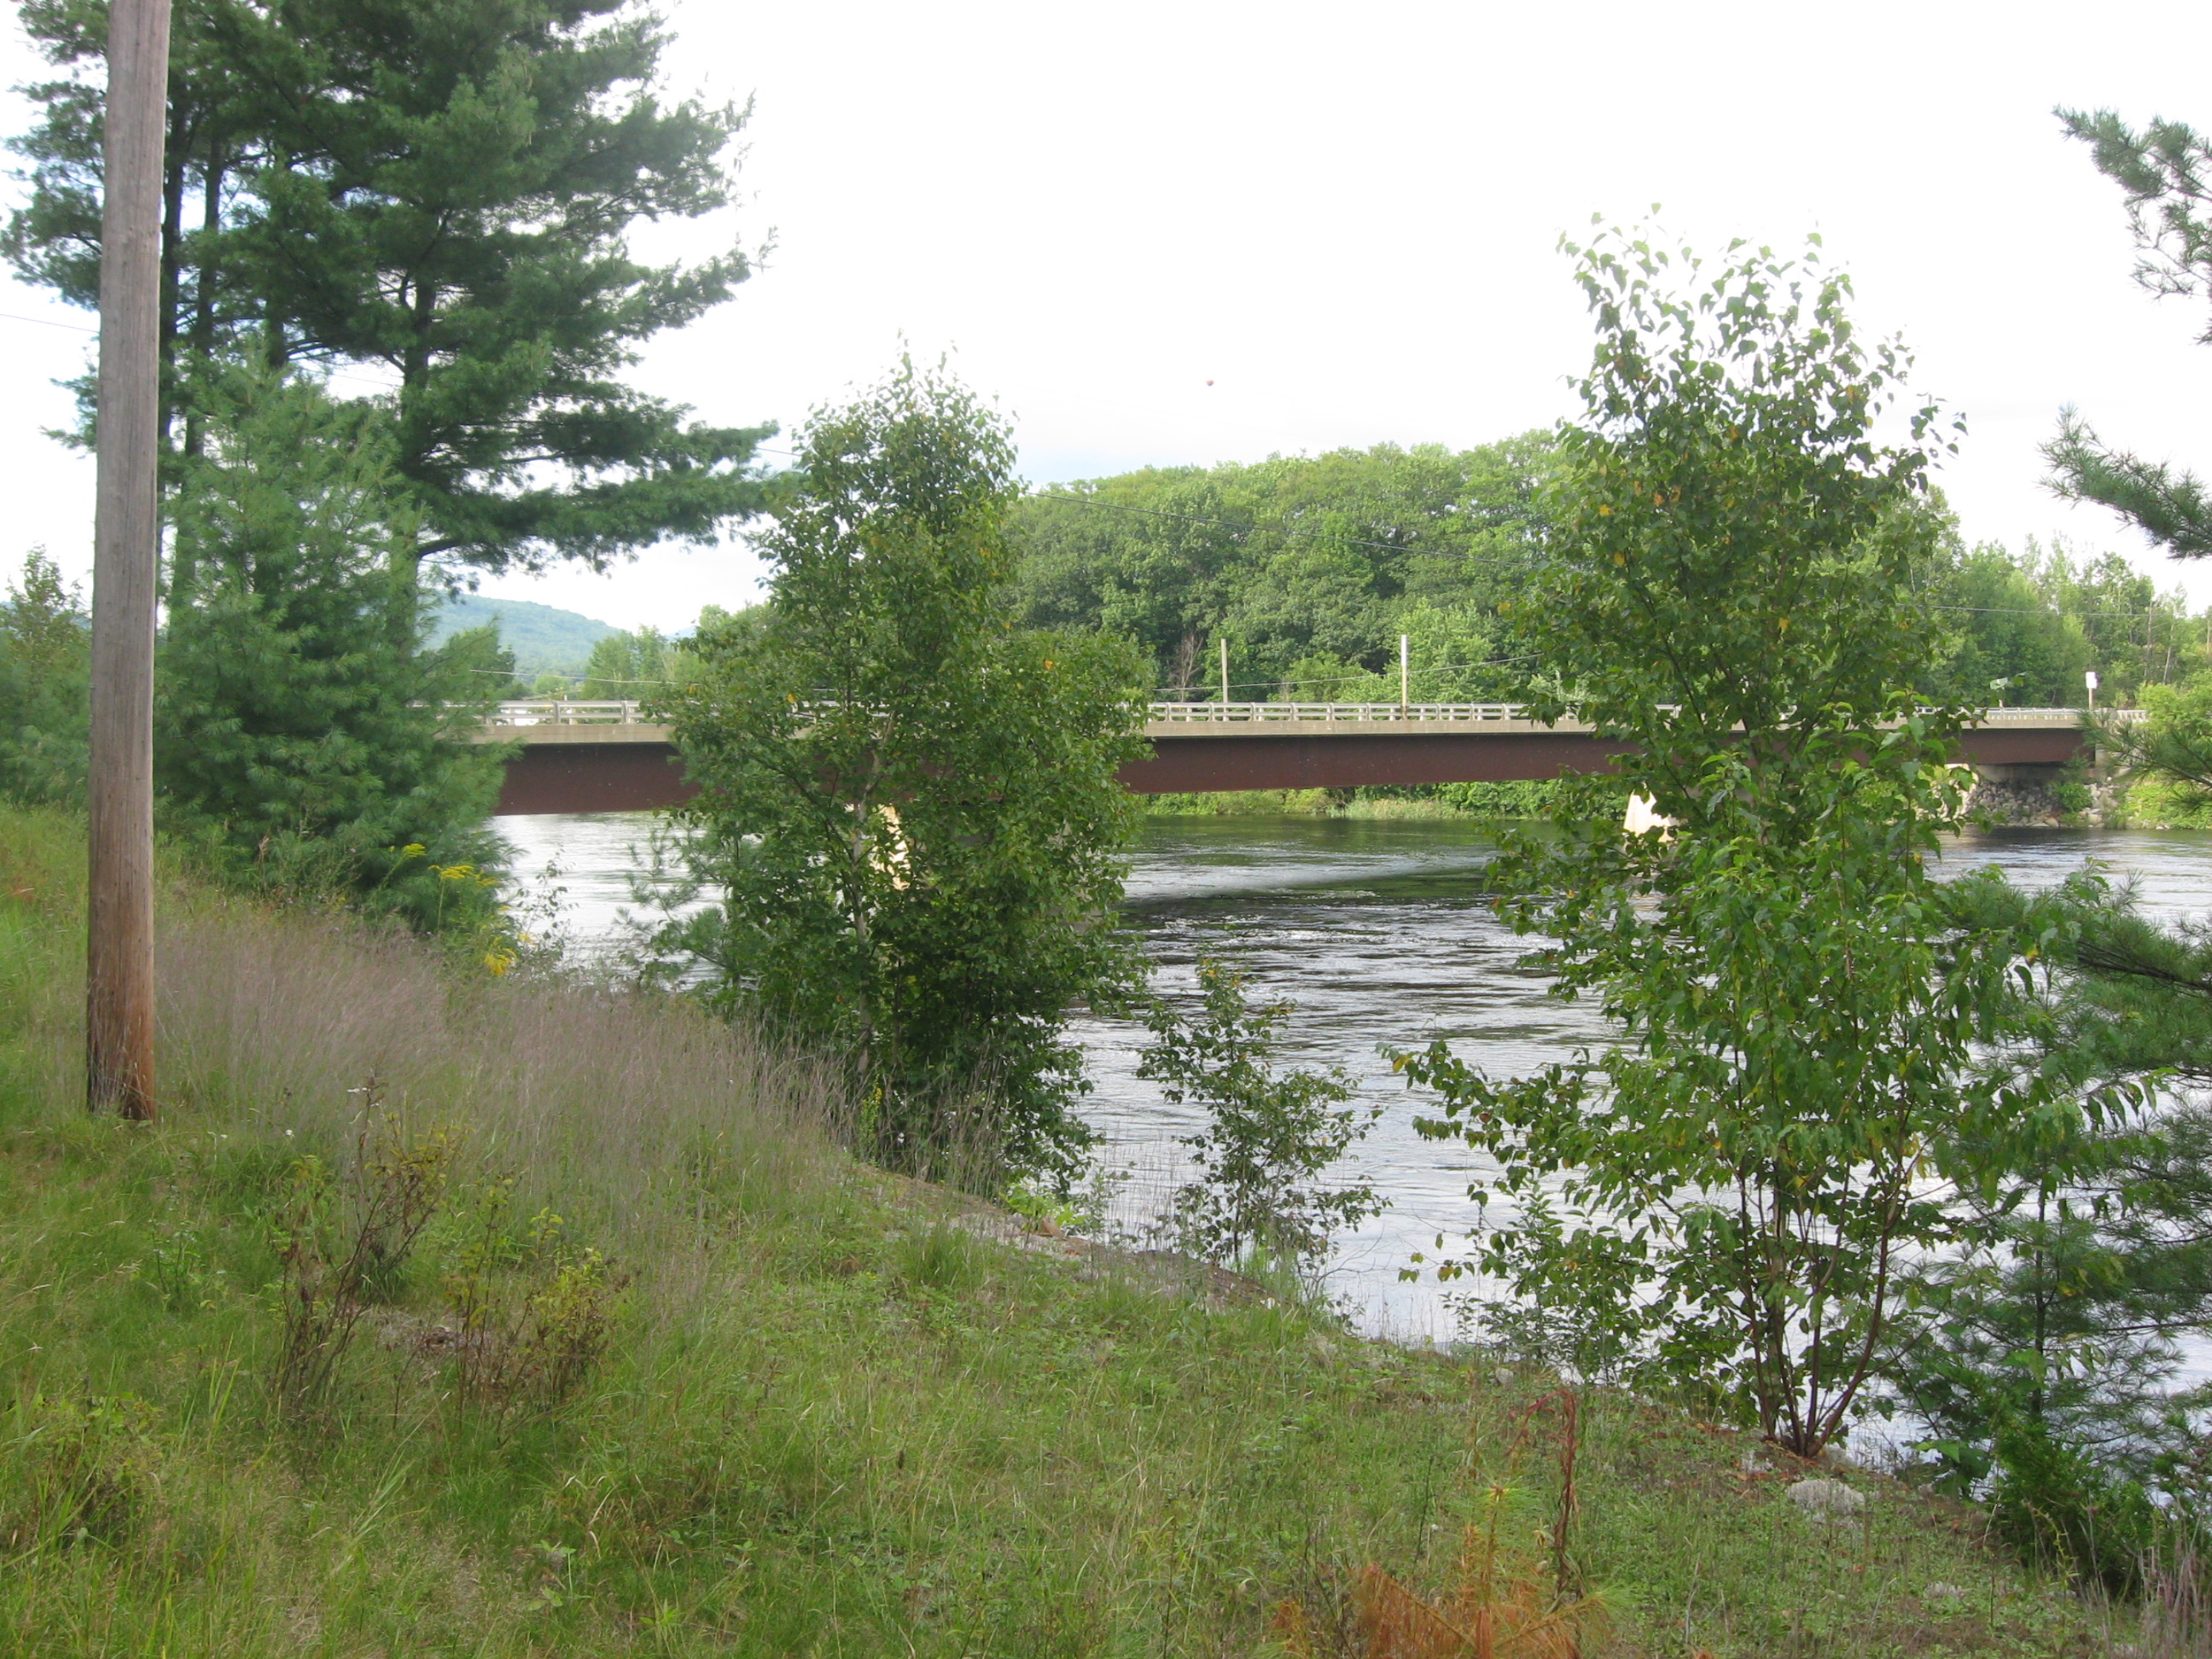 Photograph of the Kennebec River at Bingham, ME (BNGM1)